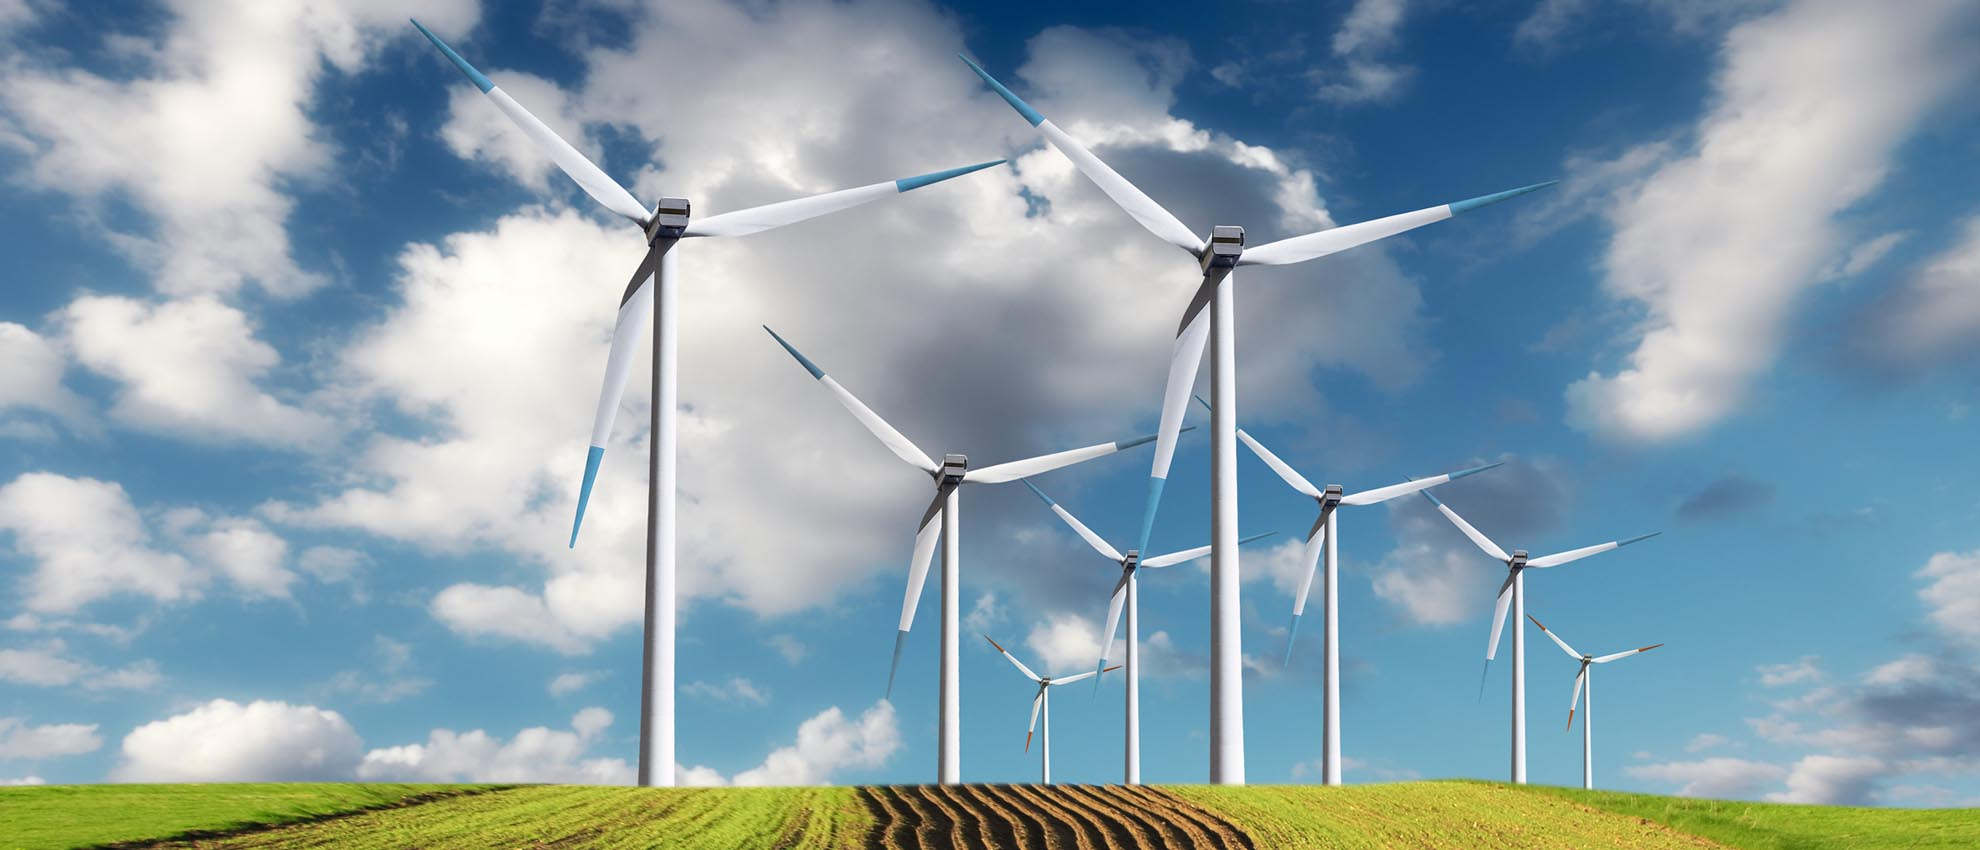 EDIBLE OIL & COMMODITY FINANCE REAL ESTATE GREEN ENERGY CONTACT